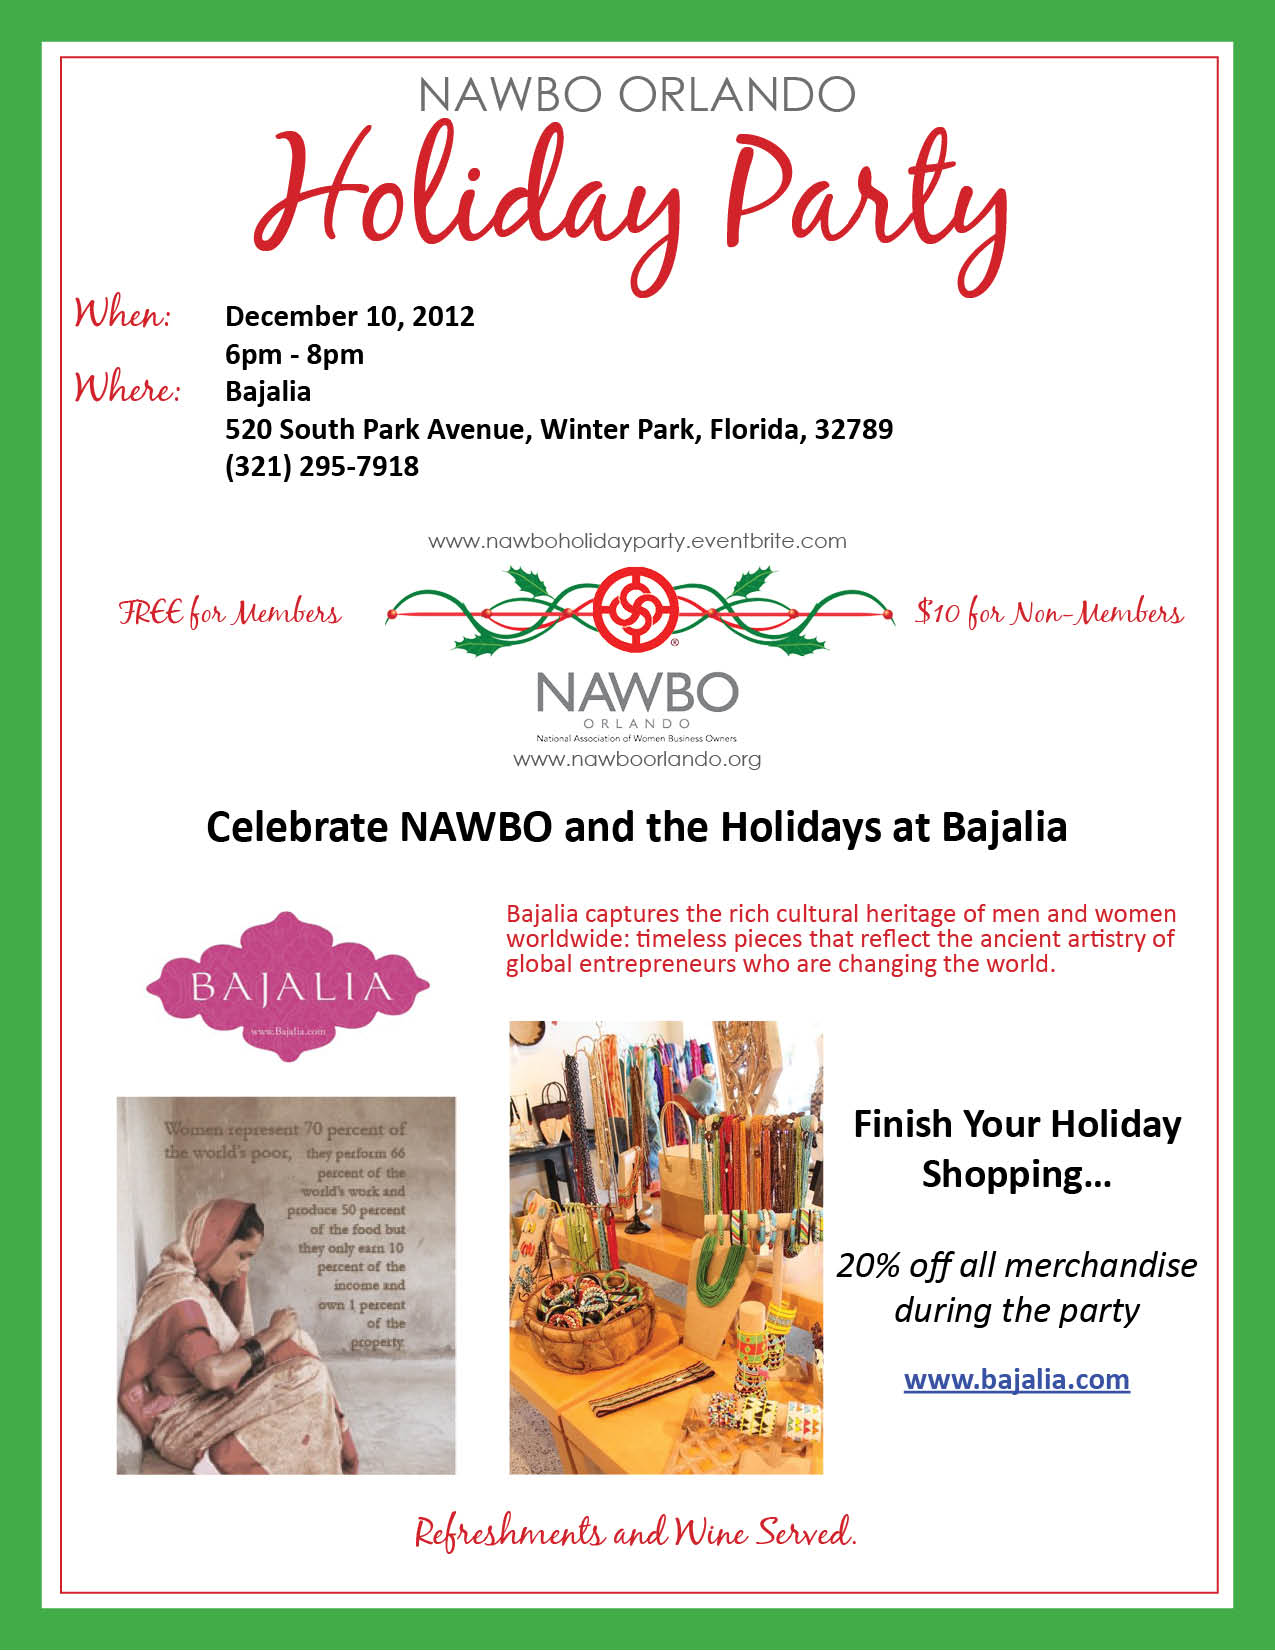 NAWBO Orlando 2013 Holiday Party